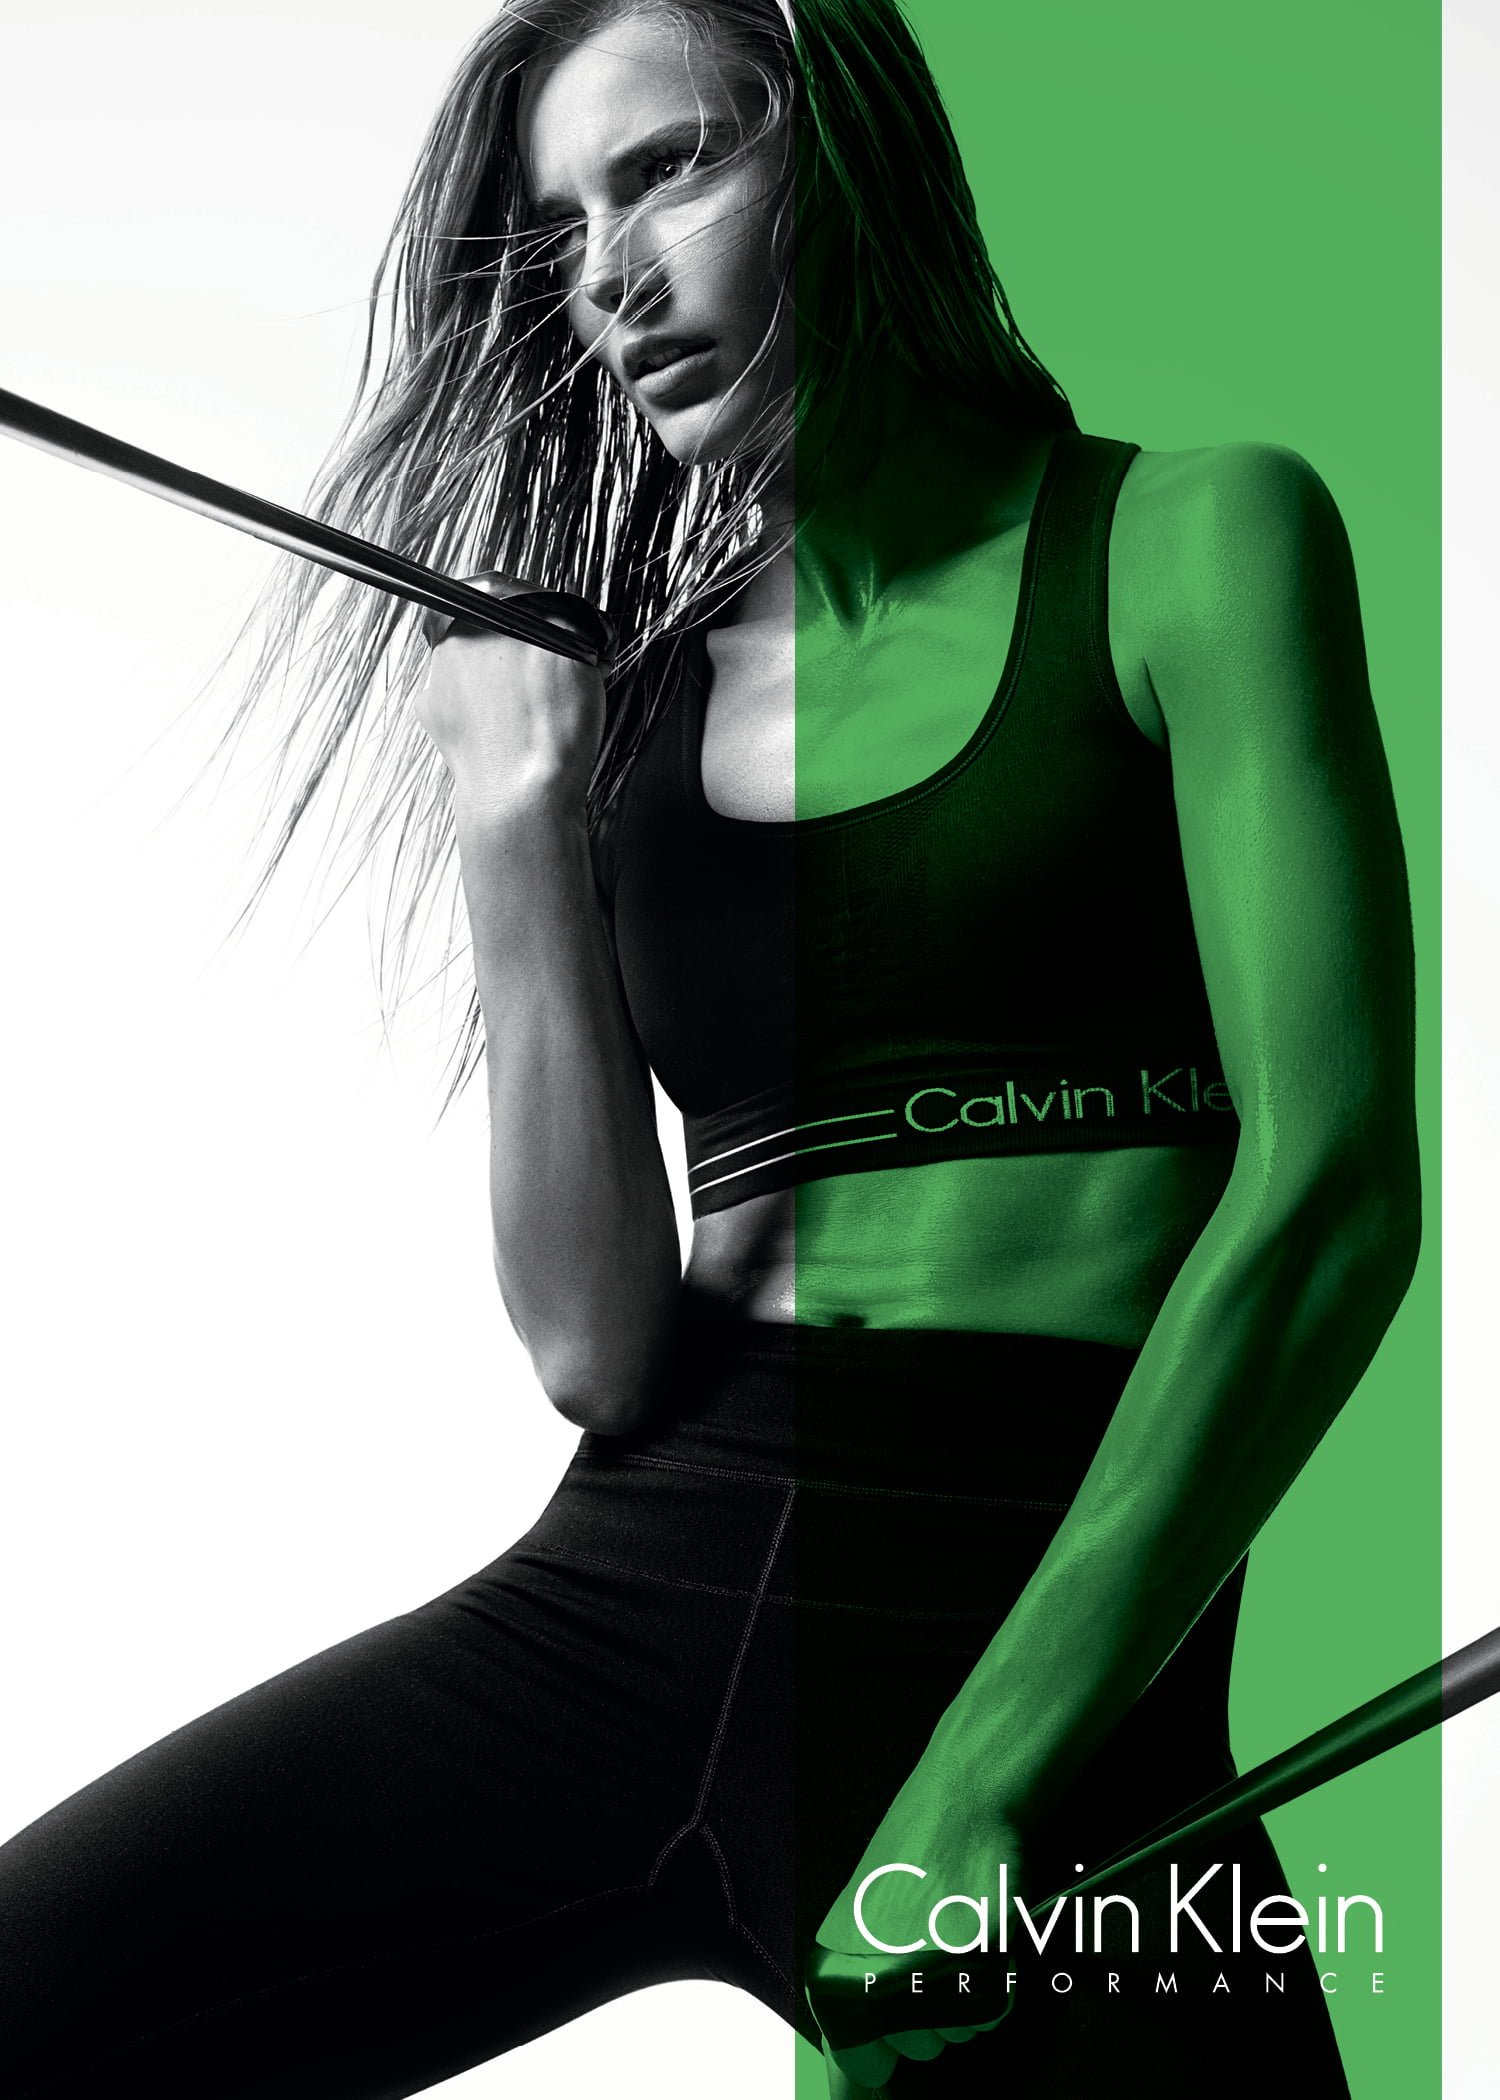 calvin-klein-performance-w-s15_ph_gregory-harris_sg08